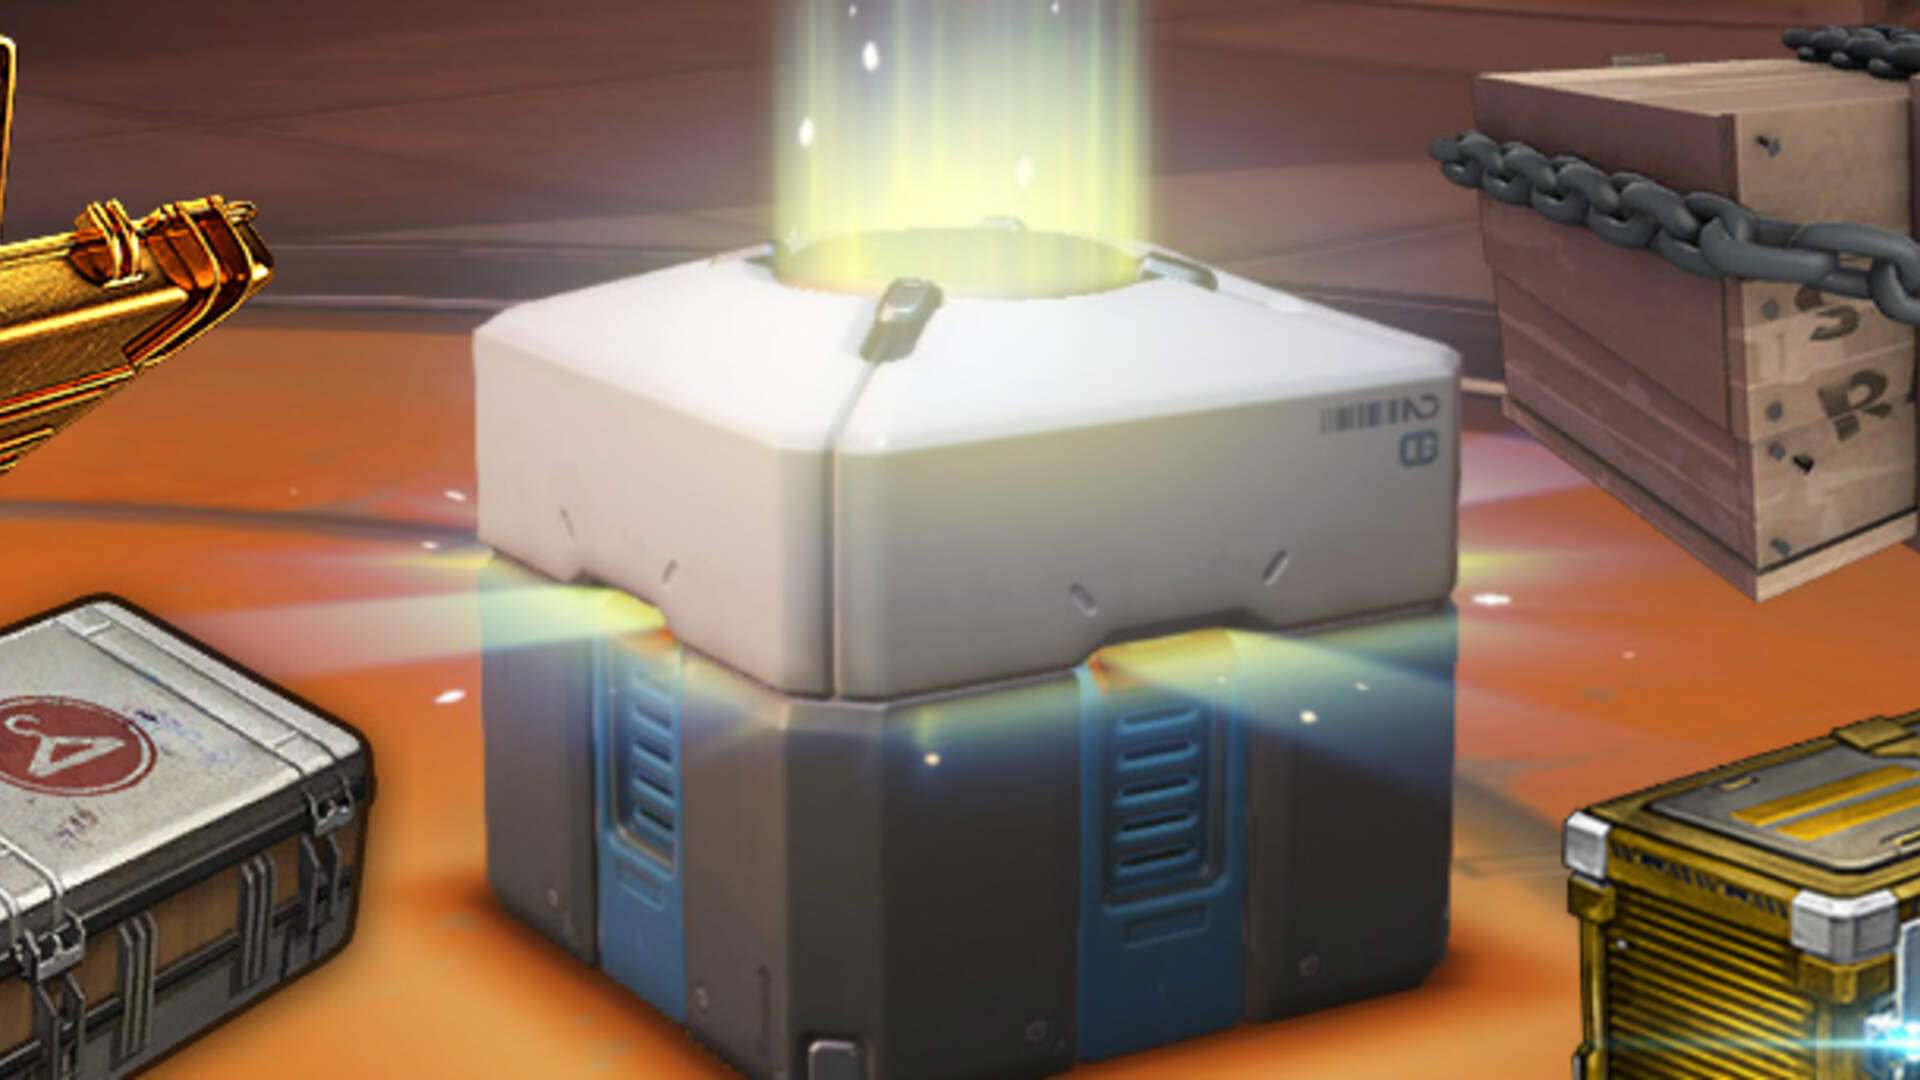 Loot Boxes Removed in Europe from Overwatch, Heroes of the Storm, and NBA 2K to Comply With Region-Specific Gambling Laws